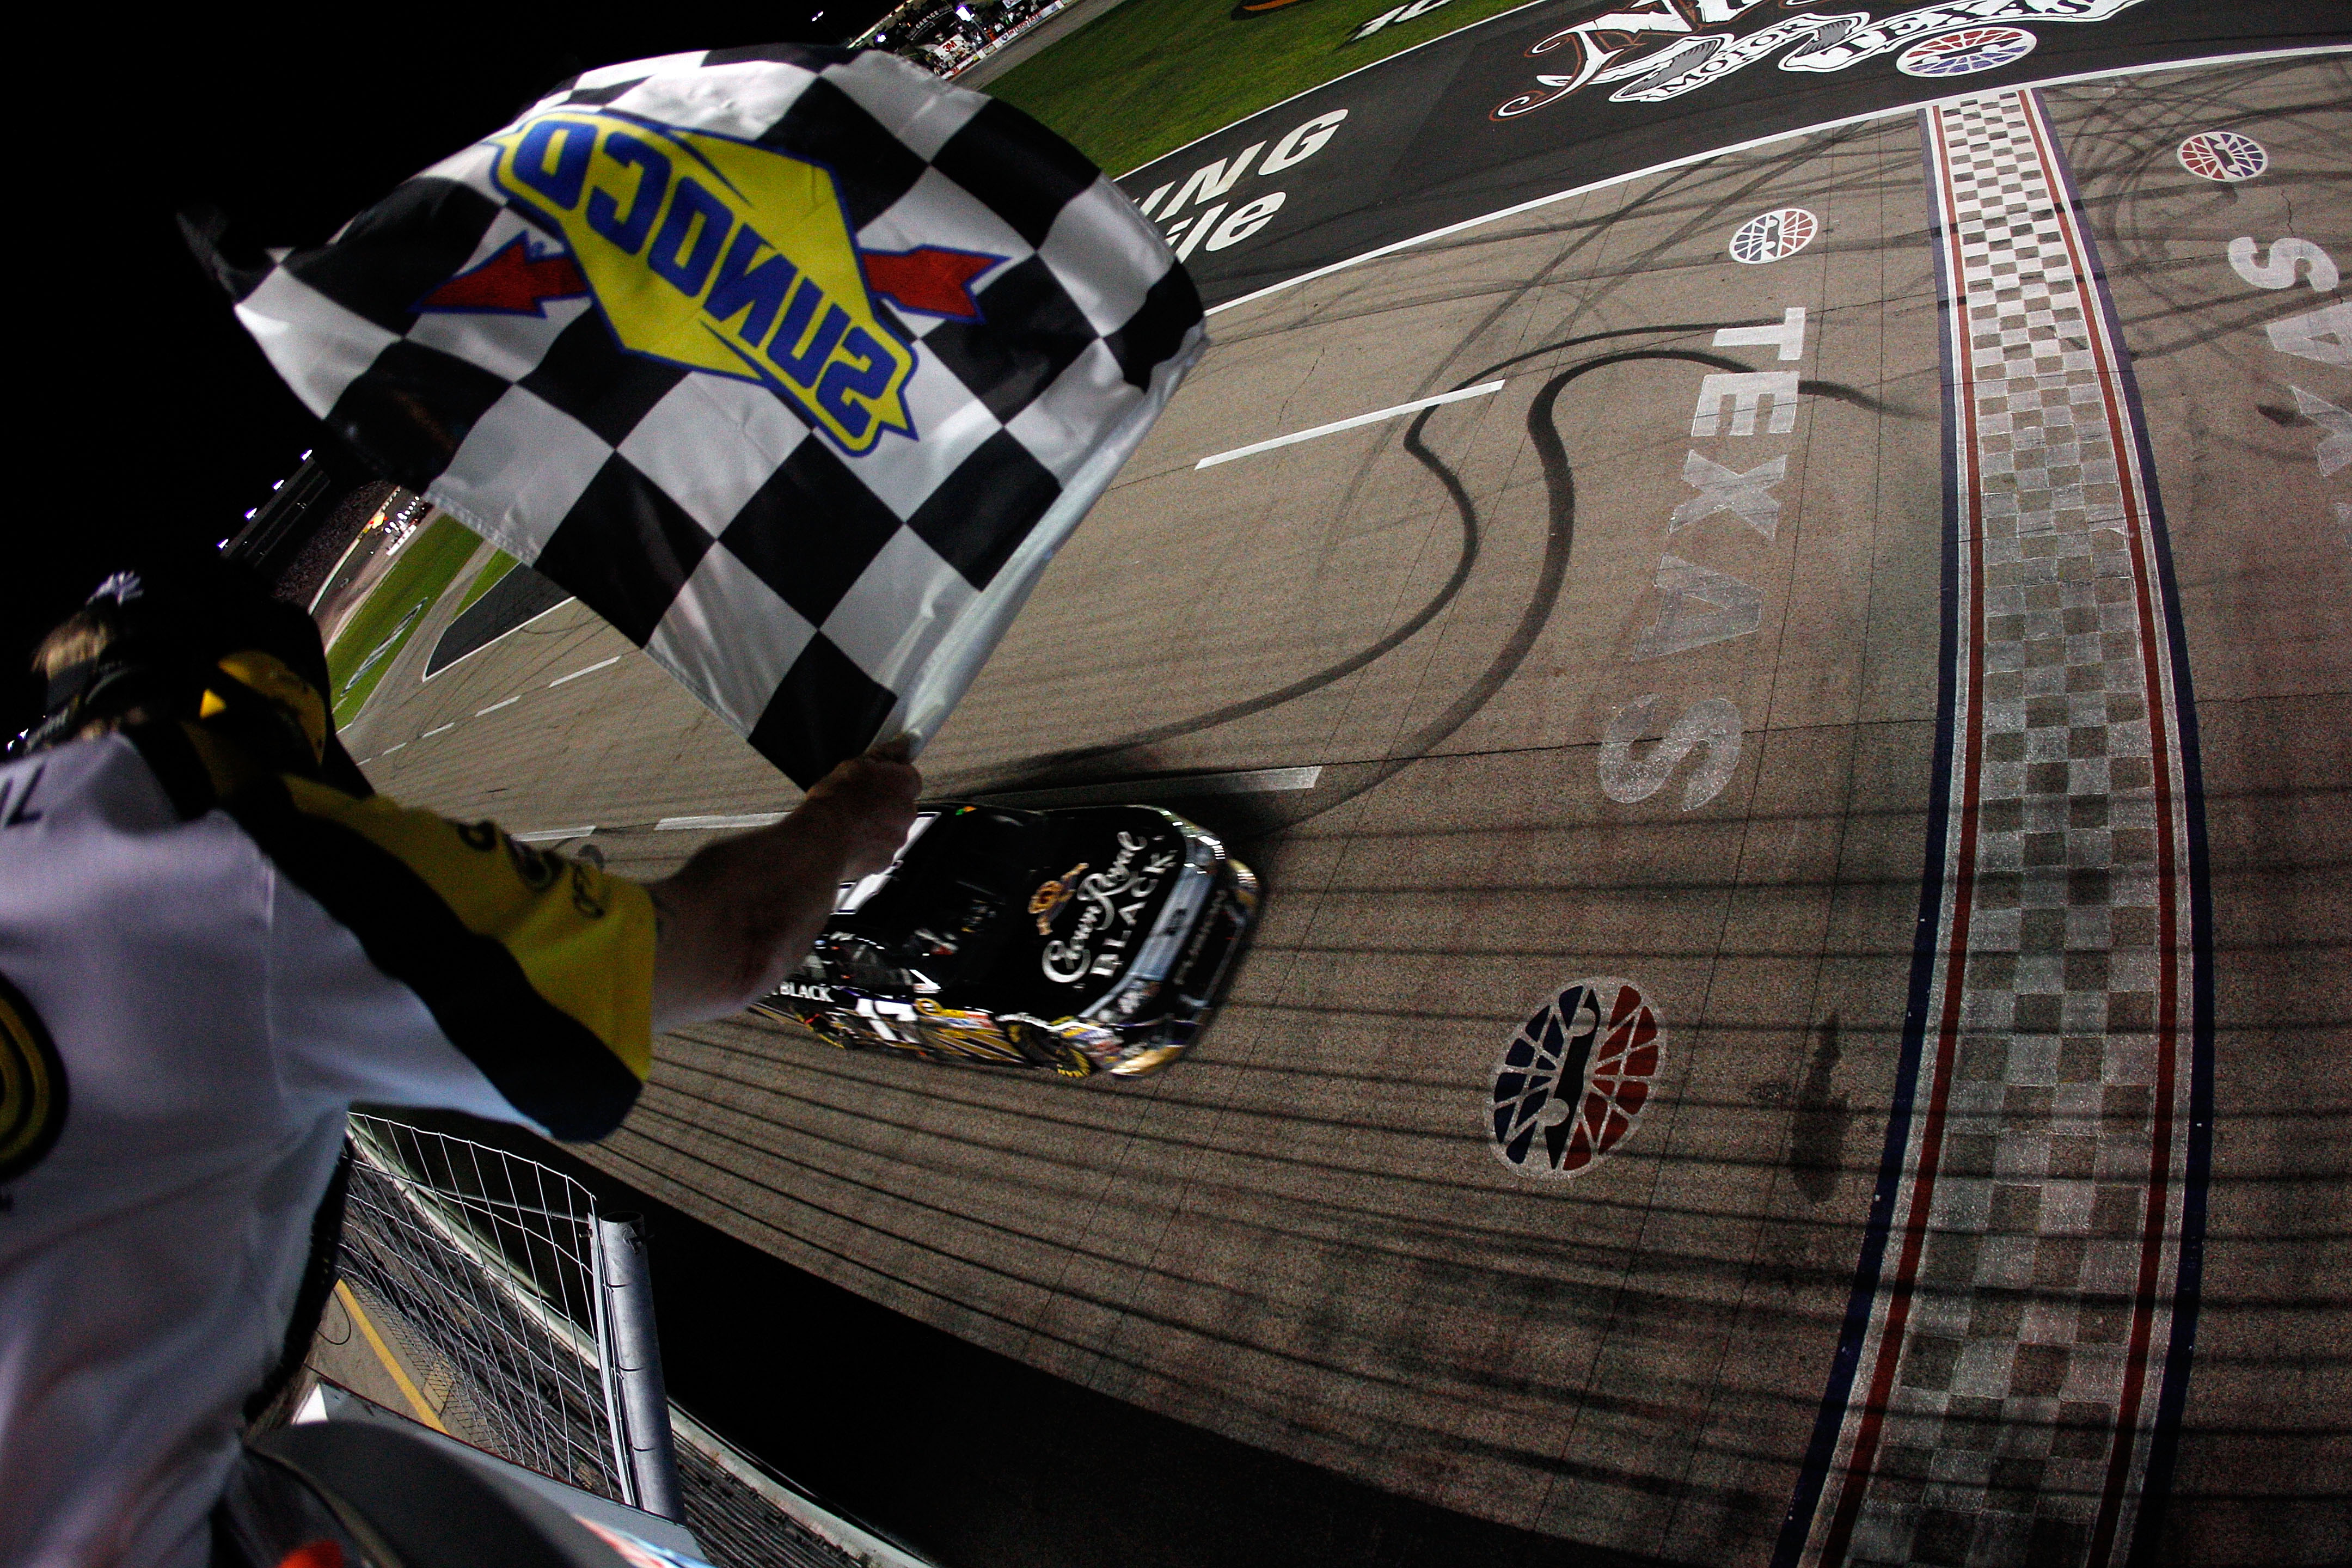 FORT WORTH, TX - APRIL 09:  Matt Kenseth, driver of the #17 Crown Royal Black Ford, crosses the finish line to win the NASCAR Sprint Cup Series Samsung Mobile 500 at Texas Motor Speedway on April 9, 2011 in Fort Worth, Texas.  (Photo by Chris Graythen/Get